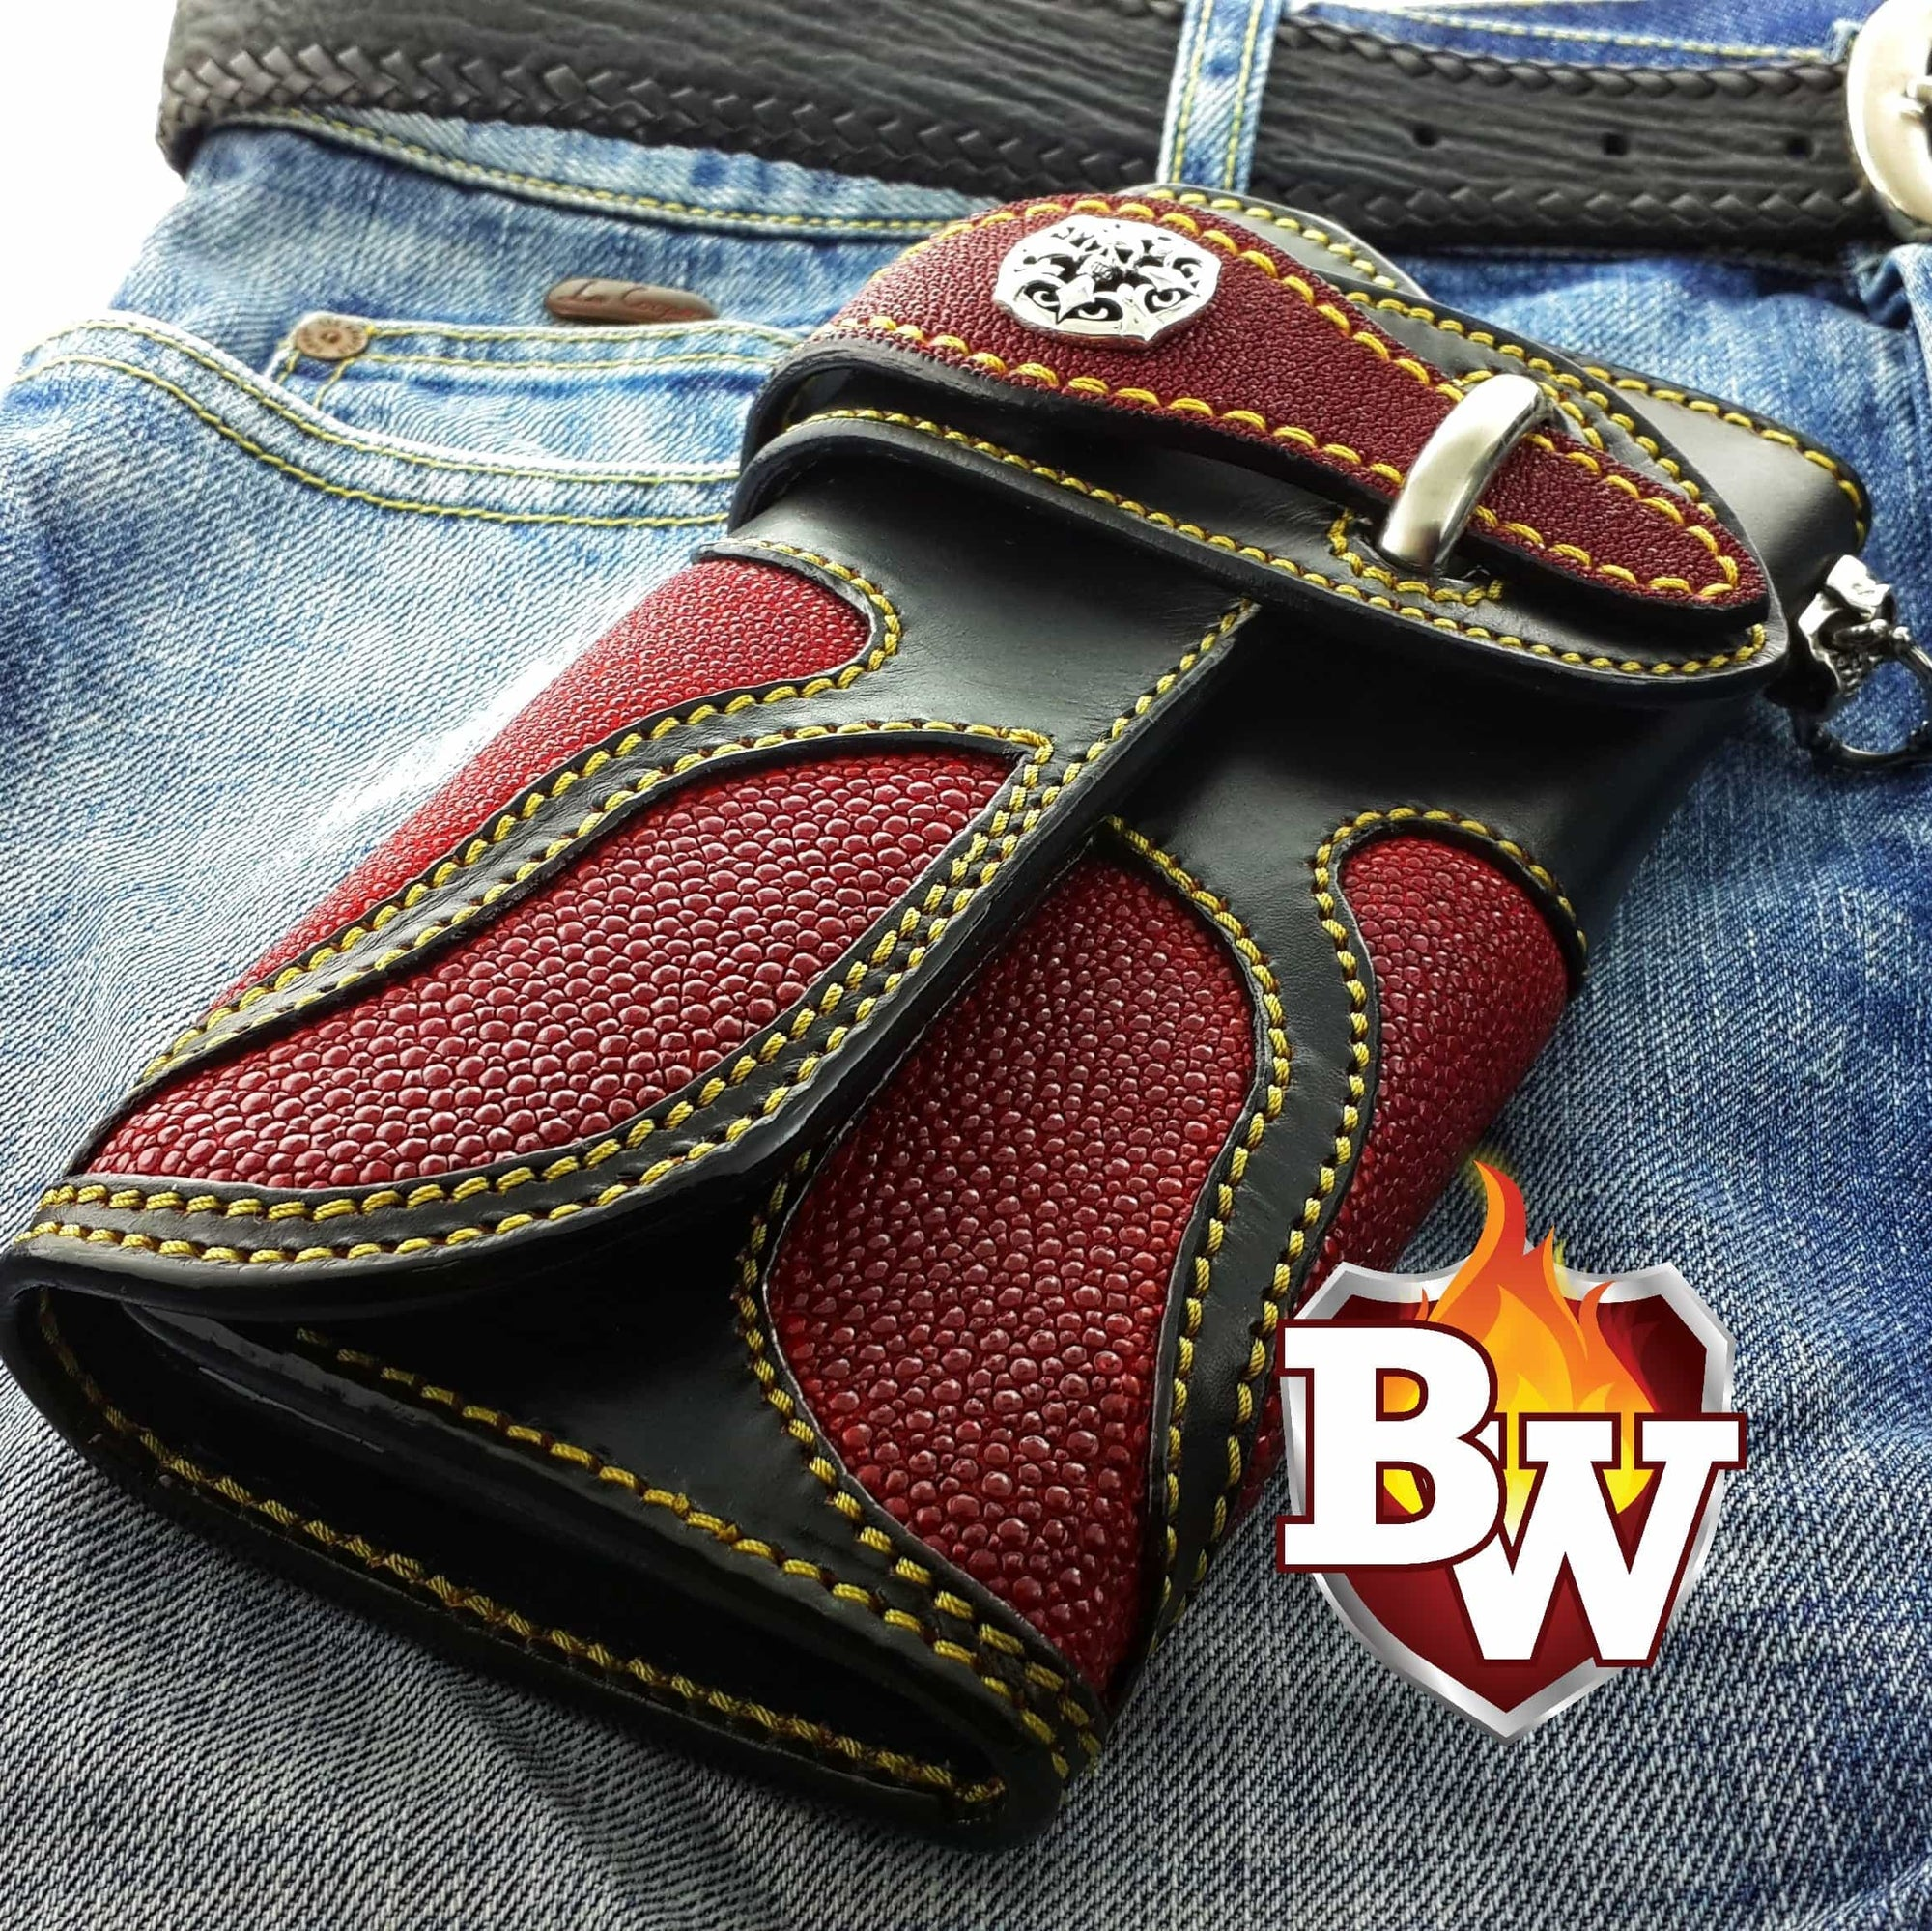 Iron Man Big-Up 8-inch  Stingray Men's Biker Wallet | Custom Handmade Men's Leather Wallets at Biker-Wallets.com